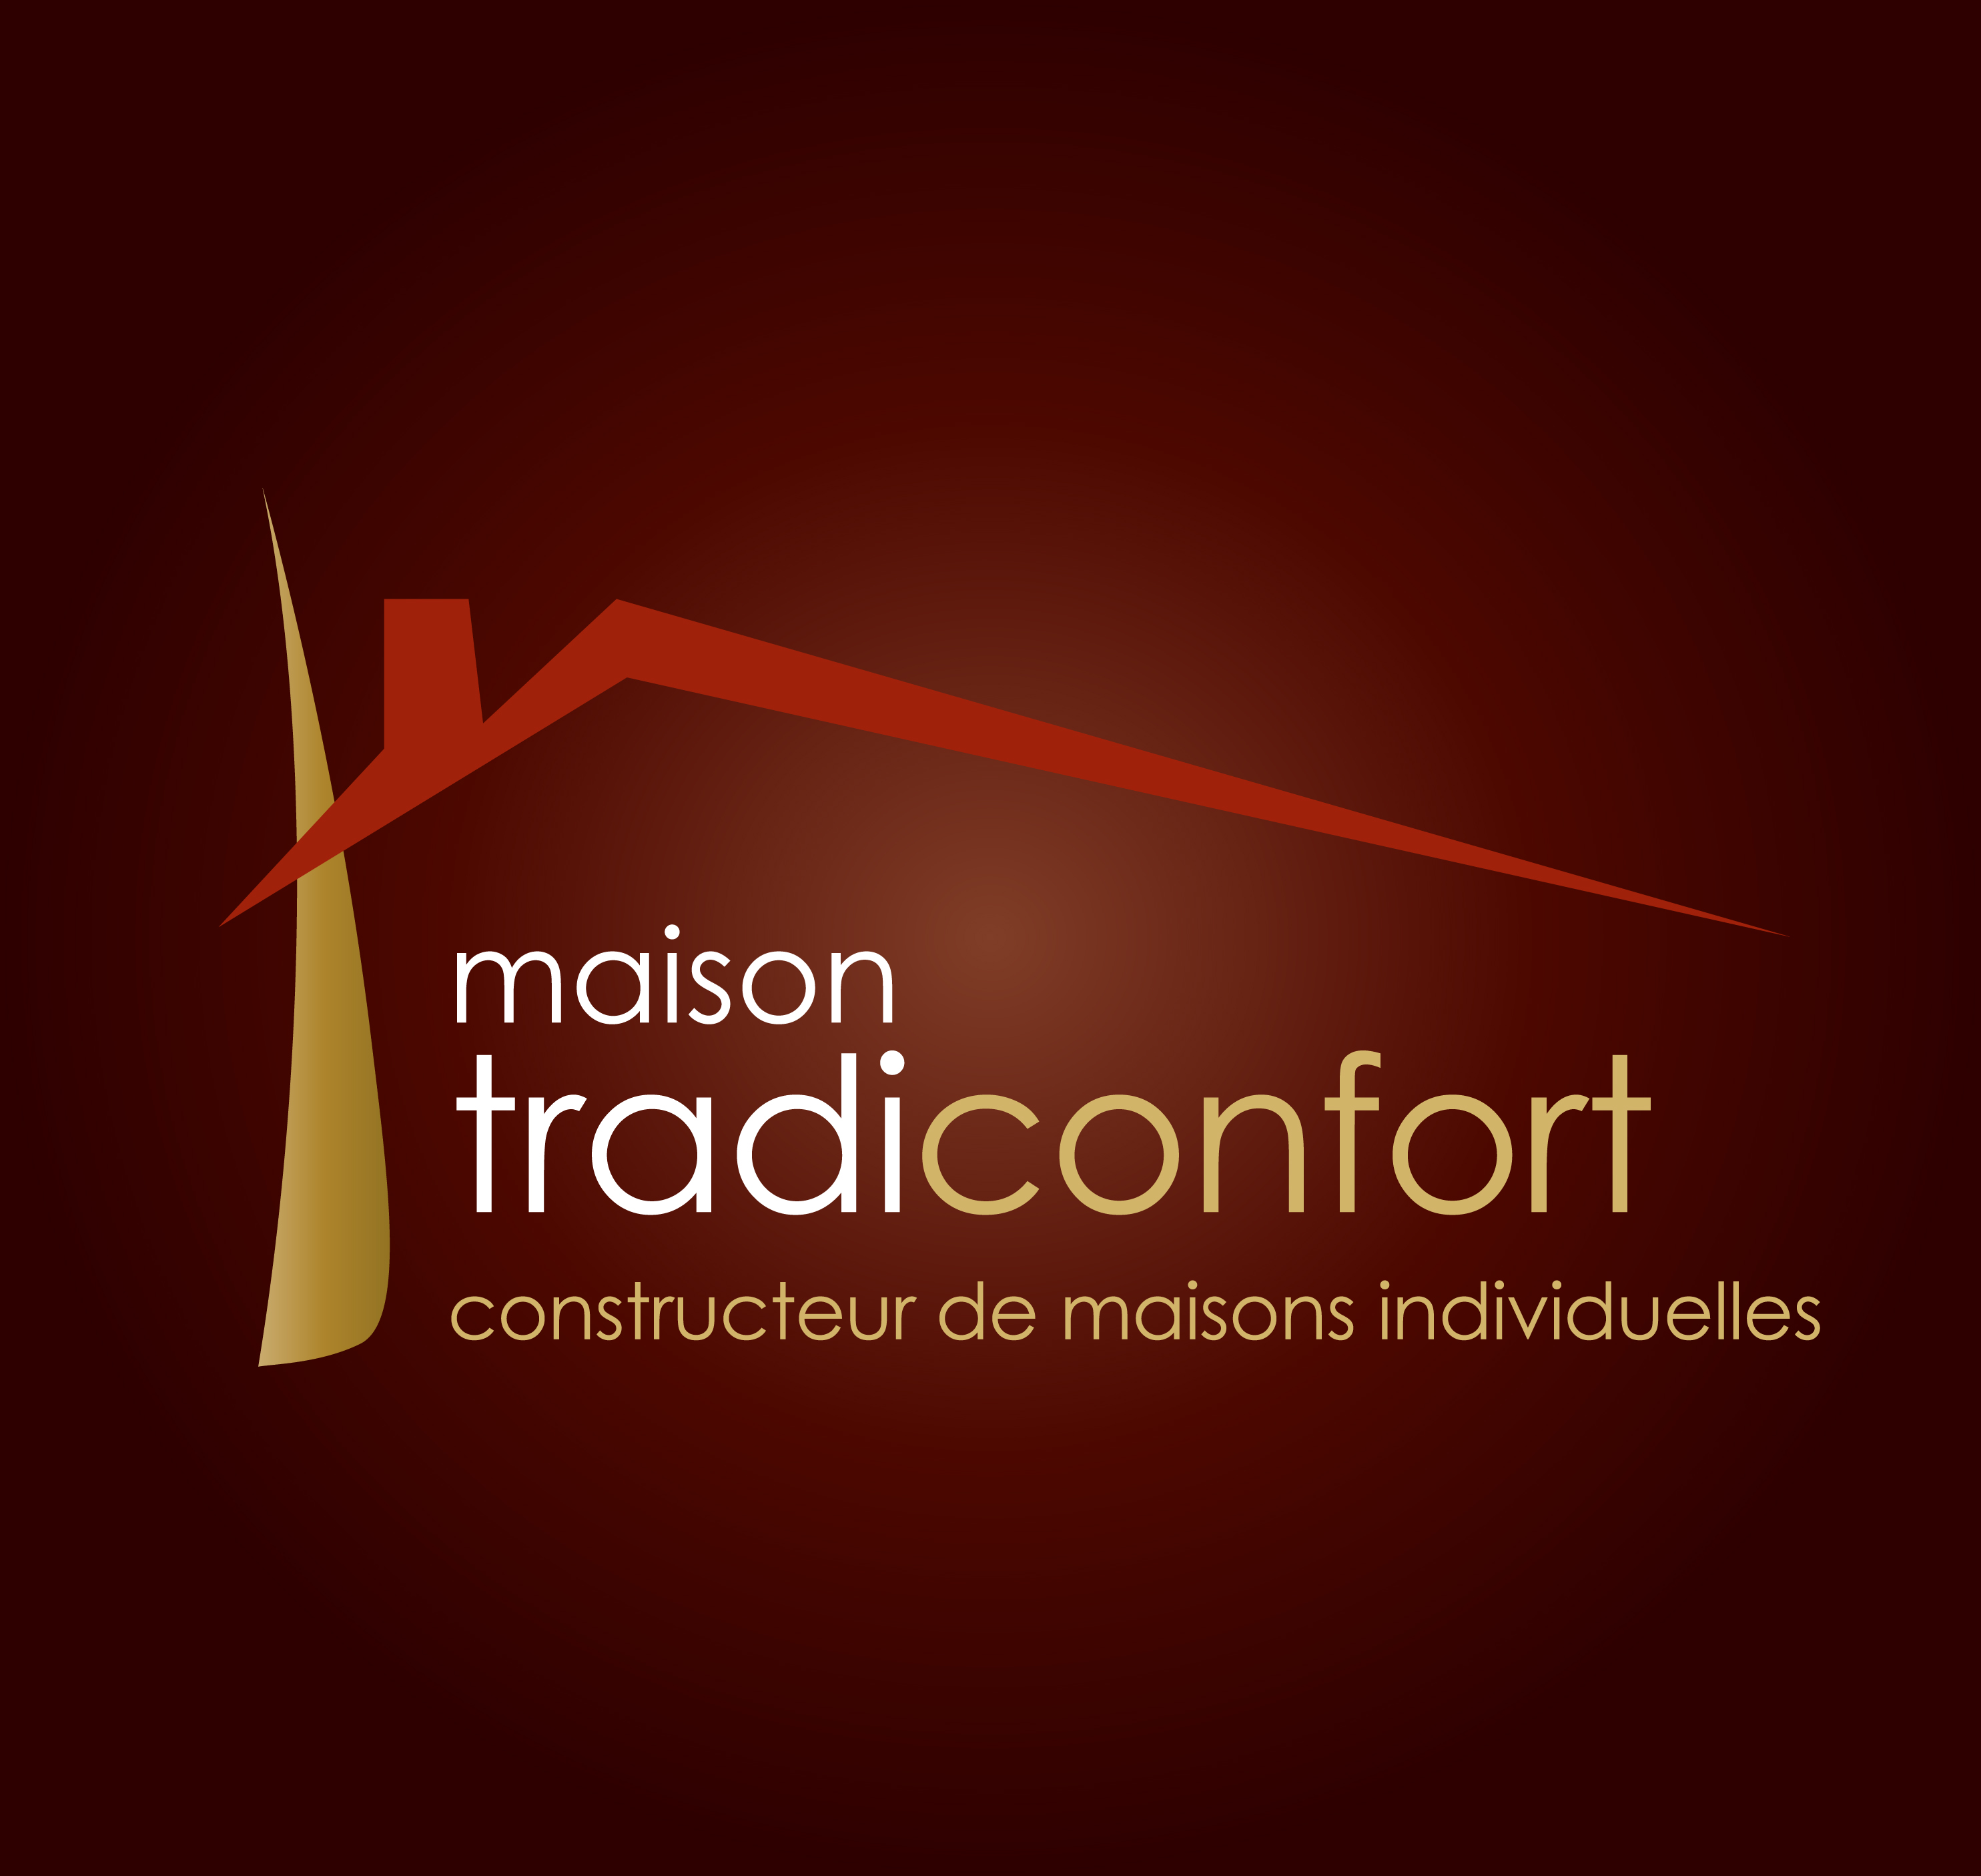 TRADI CONFORT agence immobilière Valence (26000)